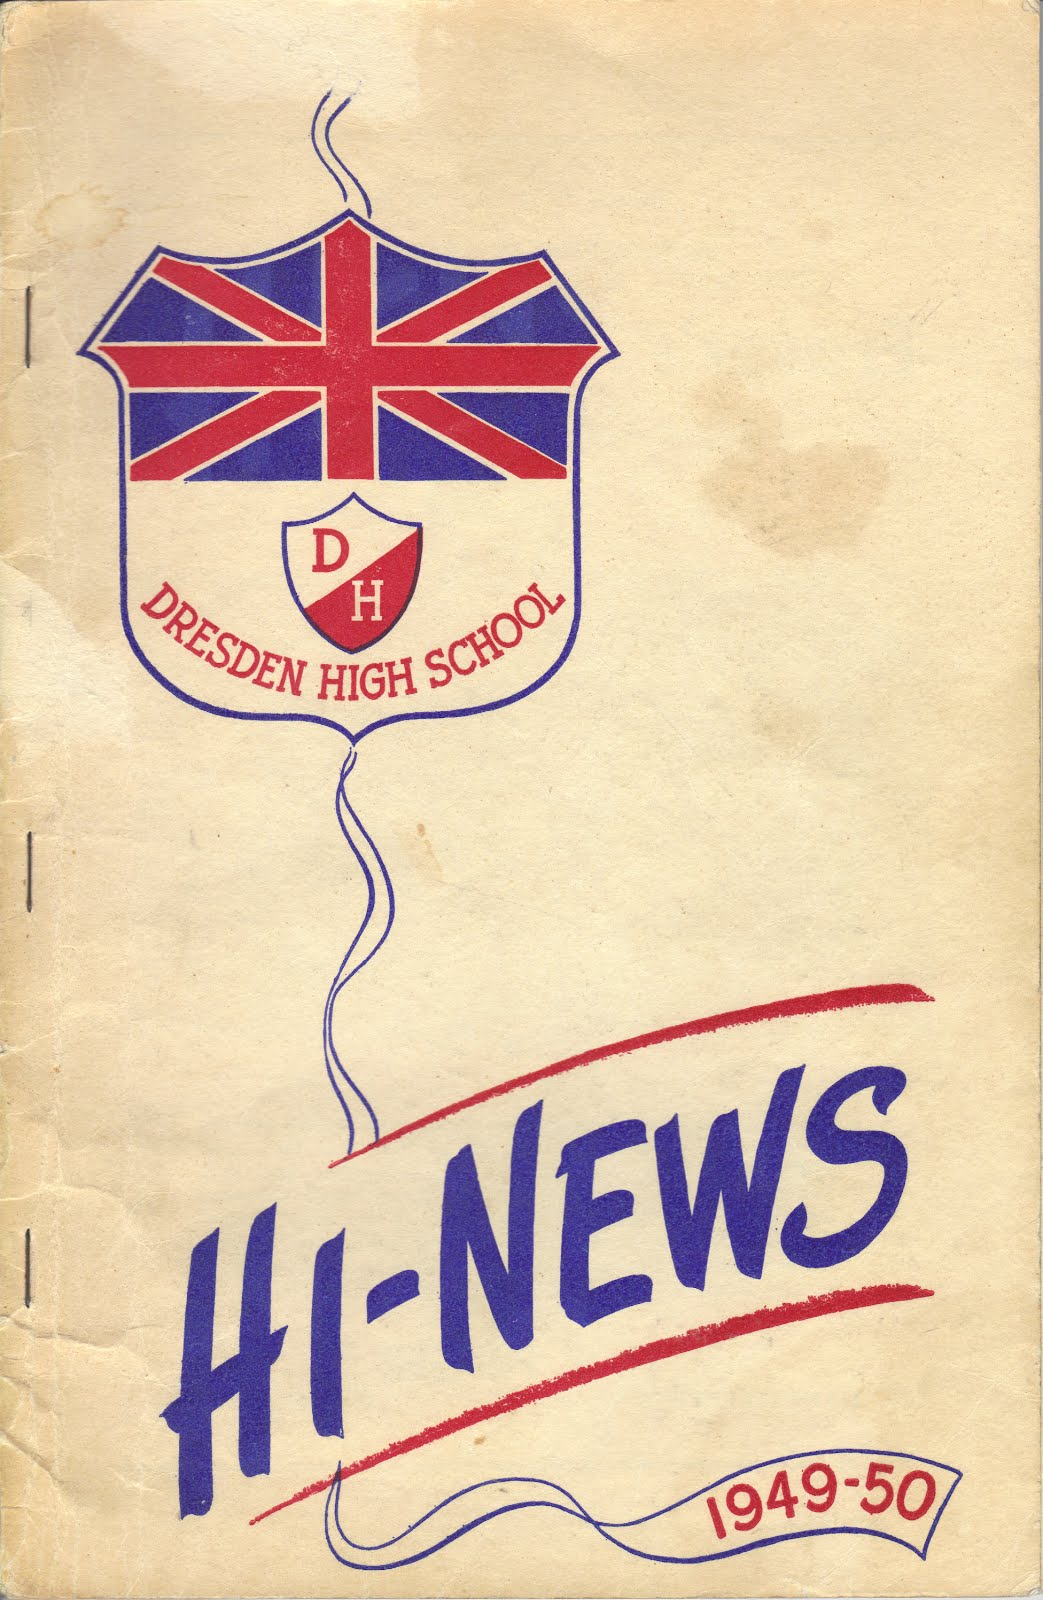 DRESDEN HIGH SCHOOL YEAR BOOK, 1949-'50